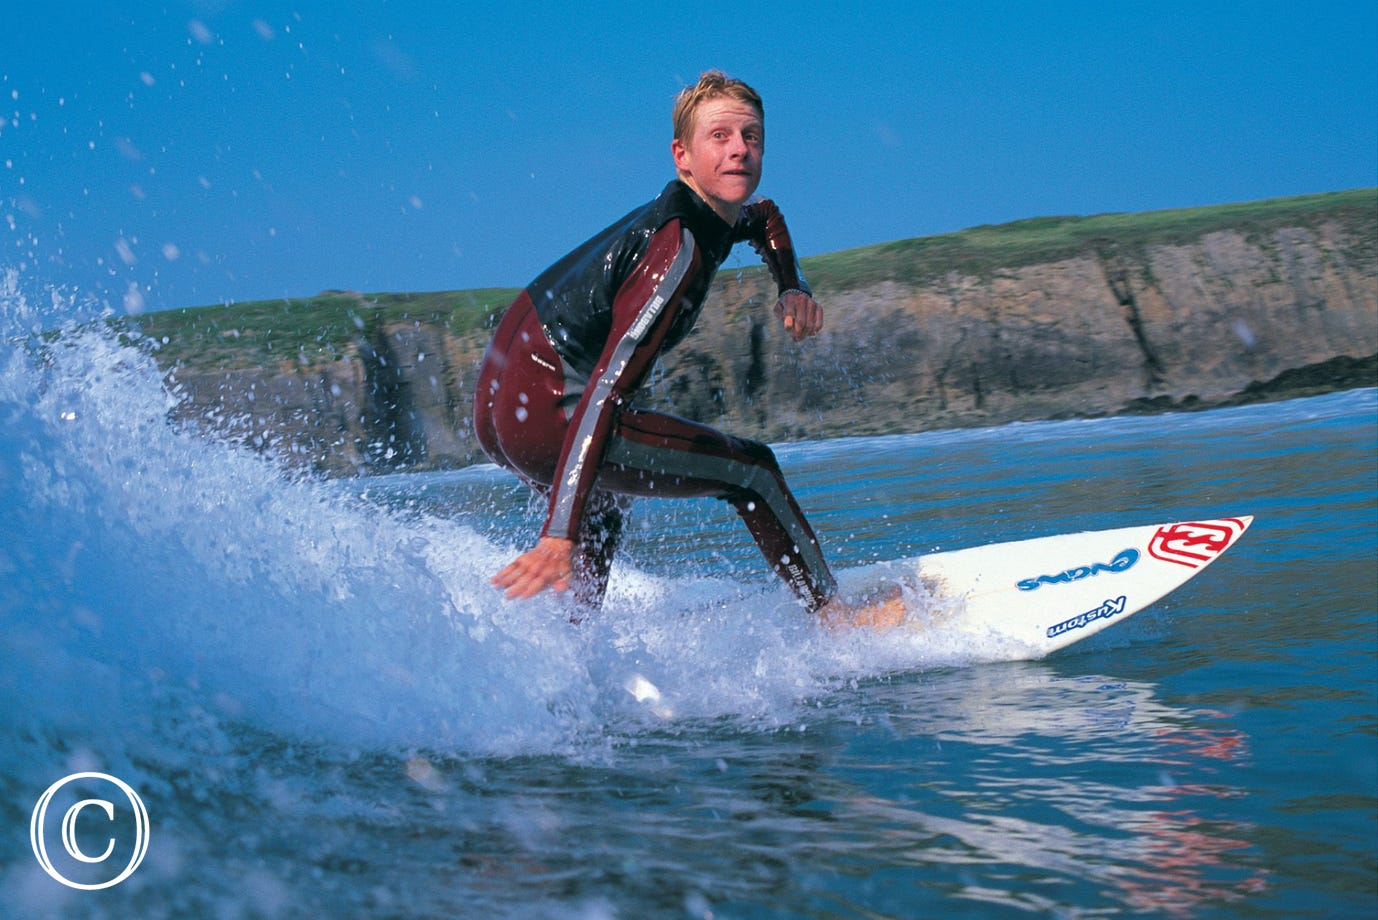 Porth Neigwl (Hell's Mouth) is a very popular venue for surfing